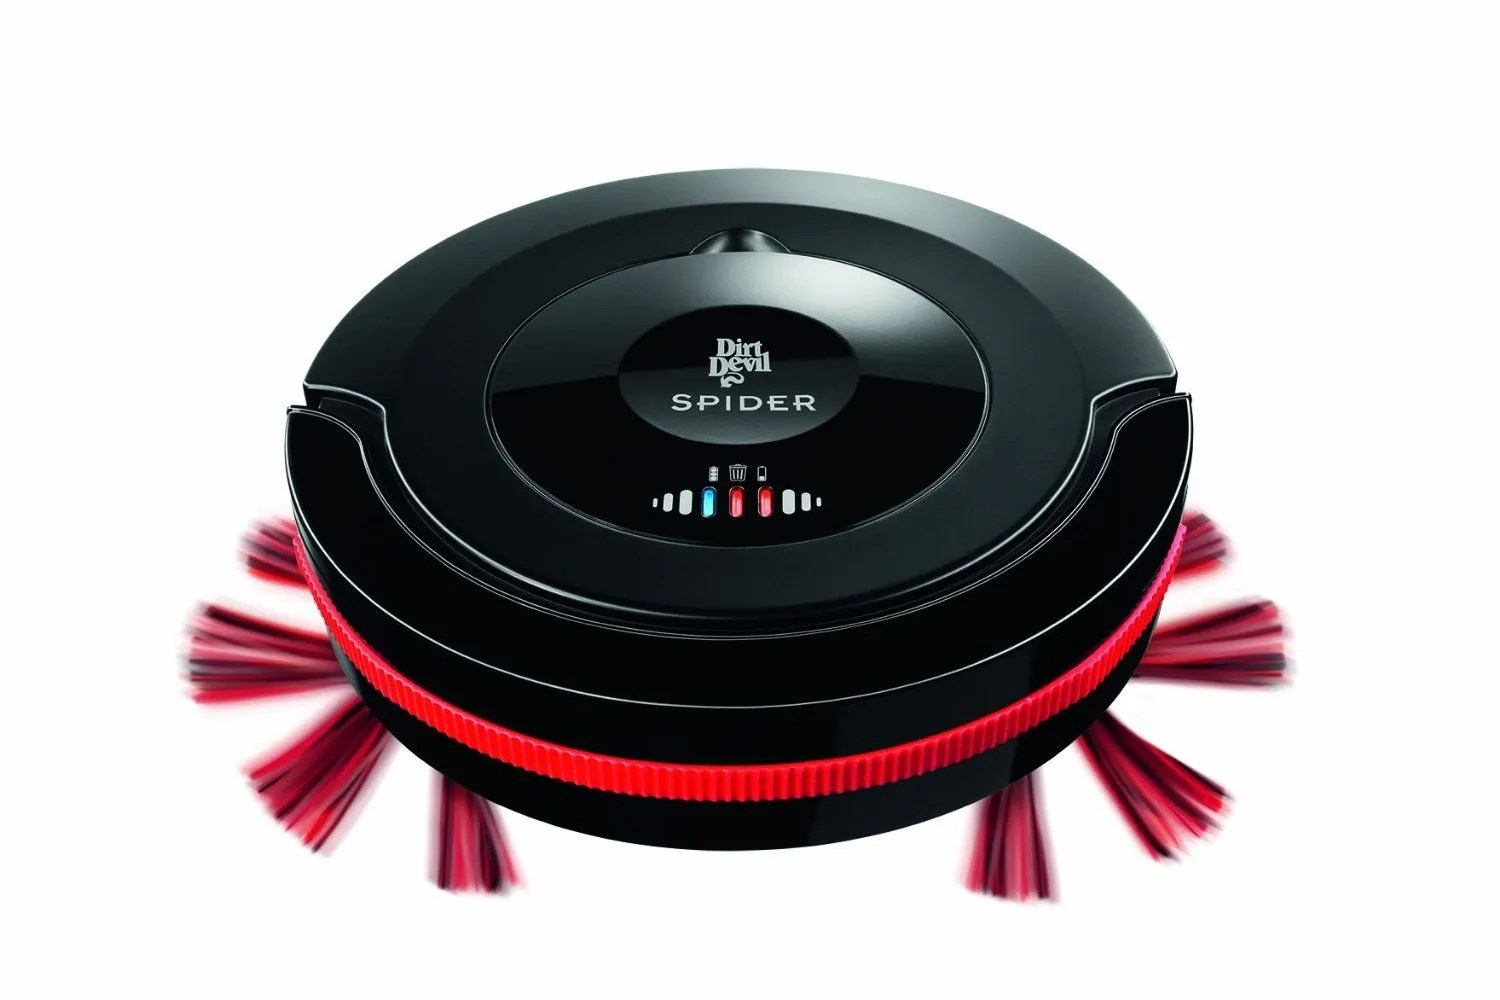 dirt devil robot vacuum cleaner